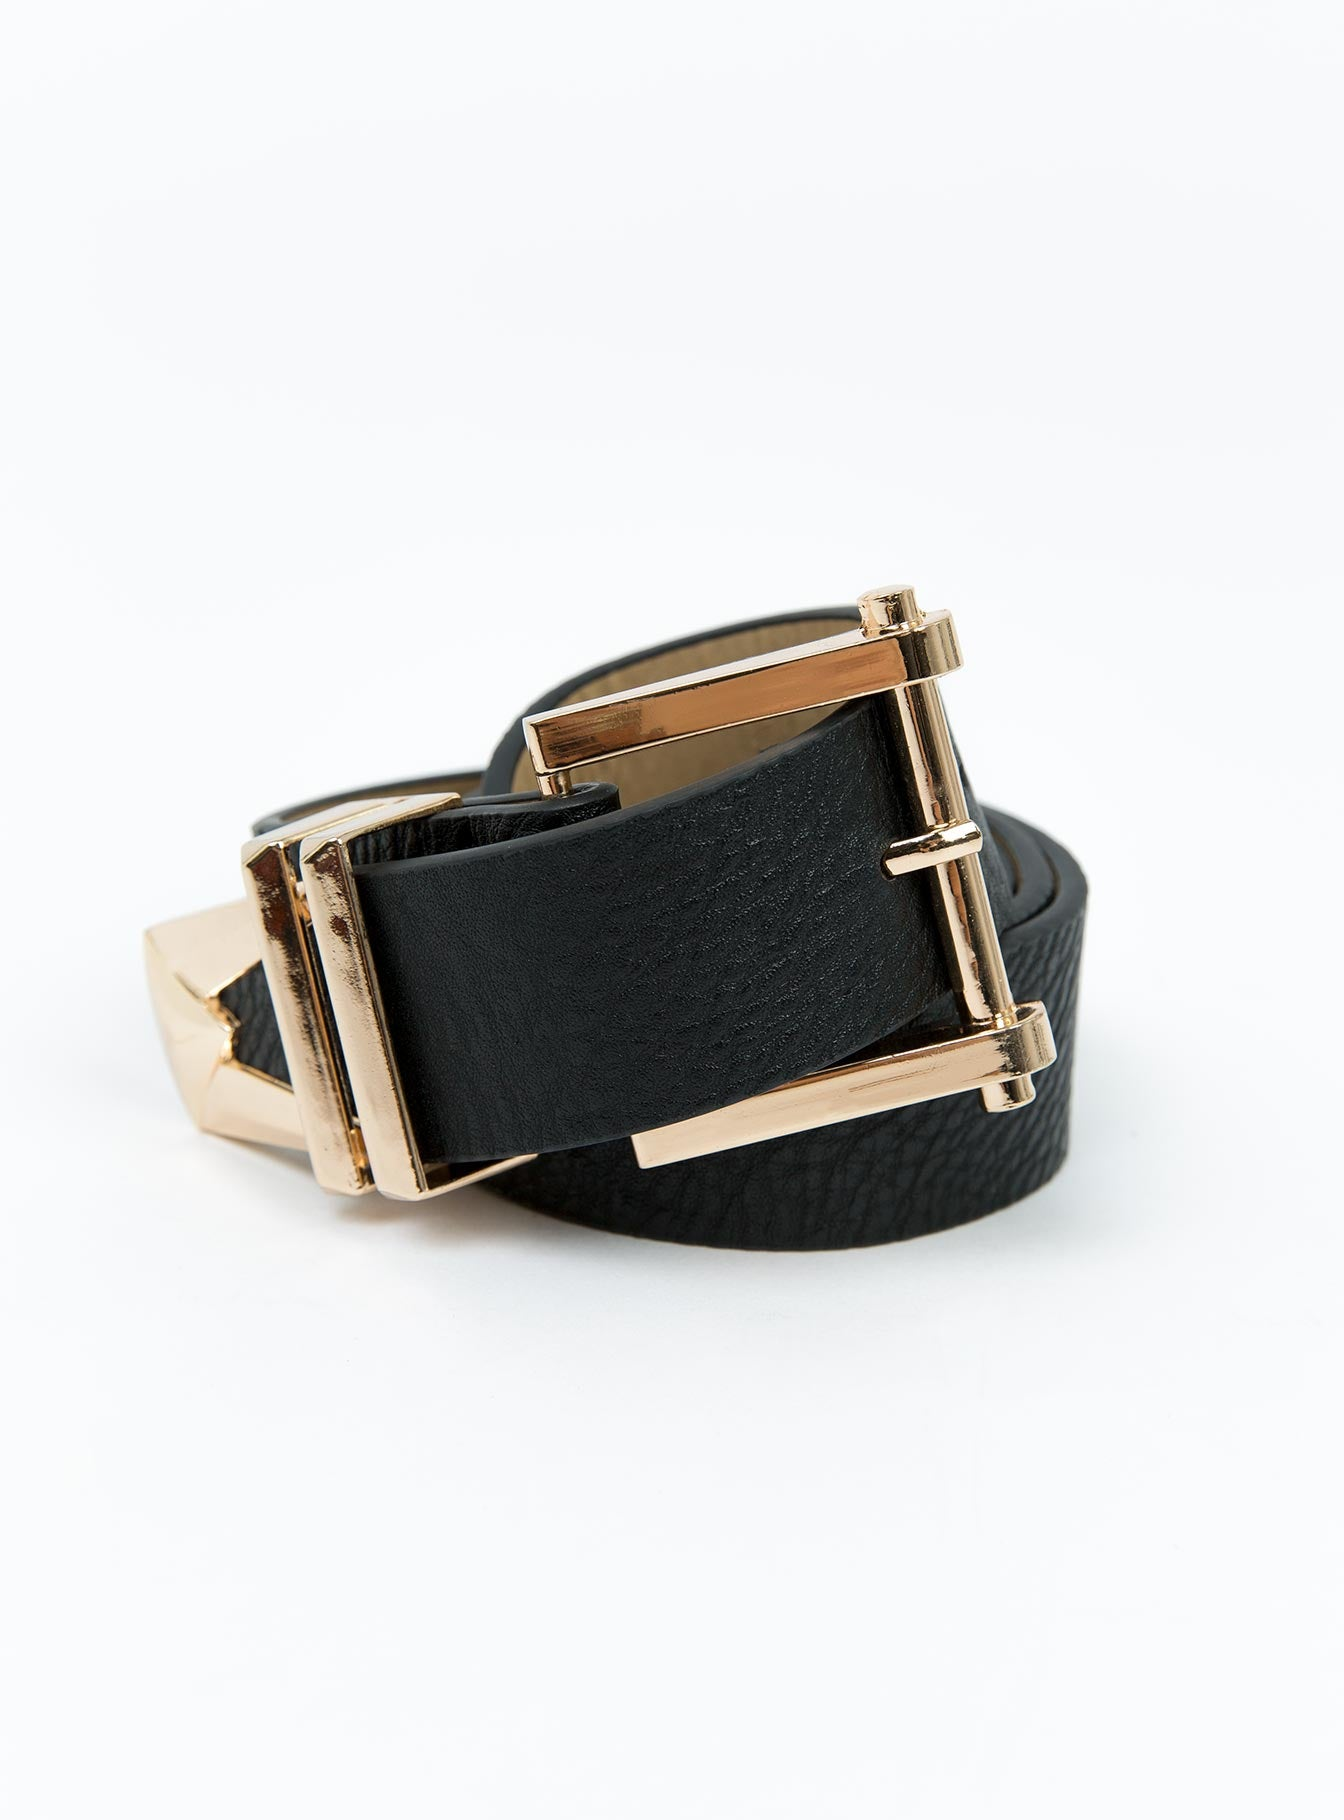 The Drifters Belt Black/Gold